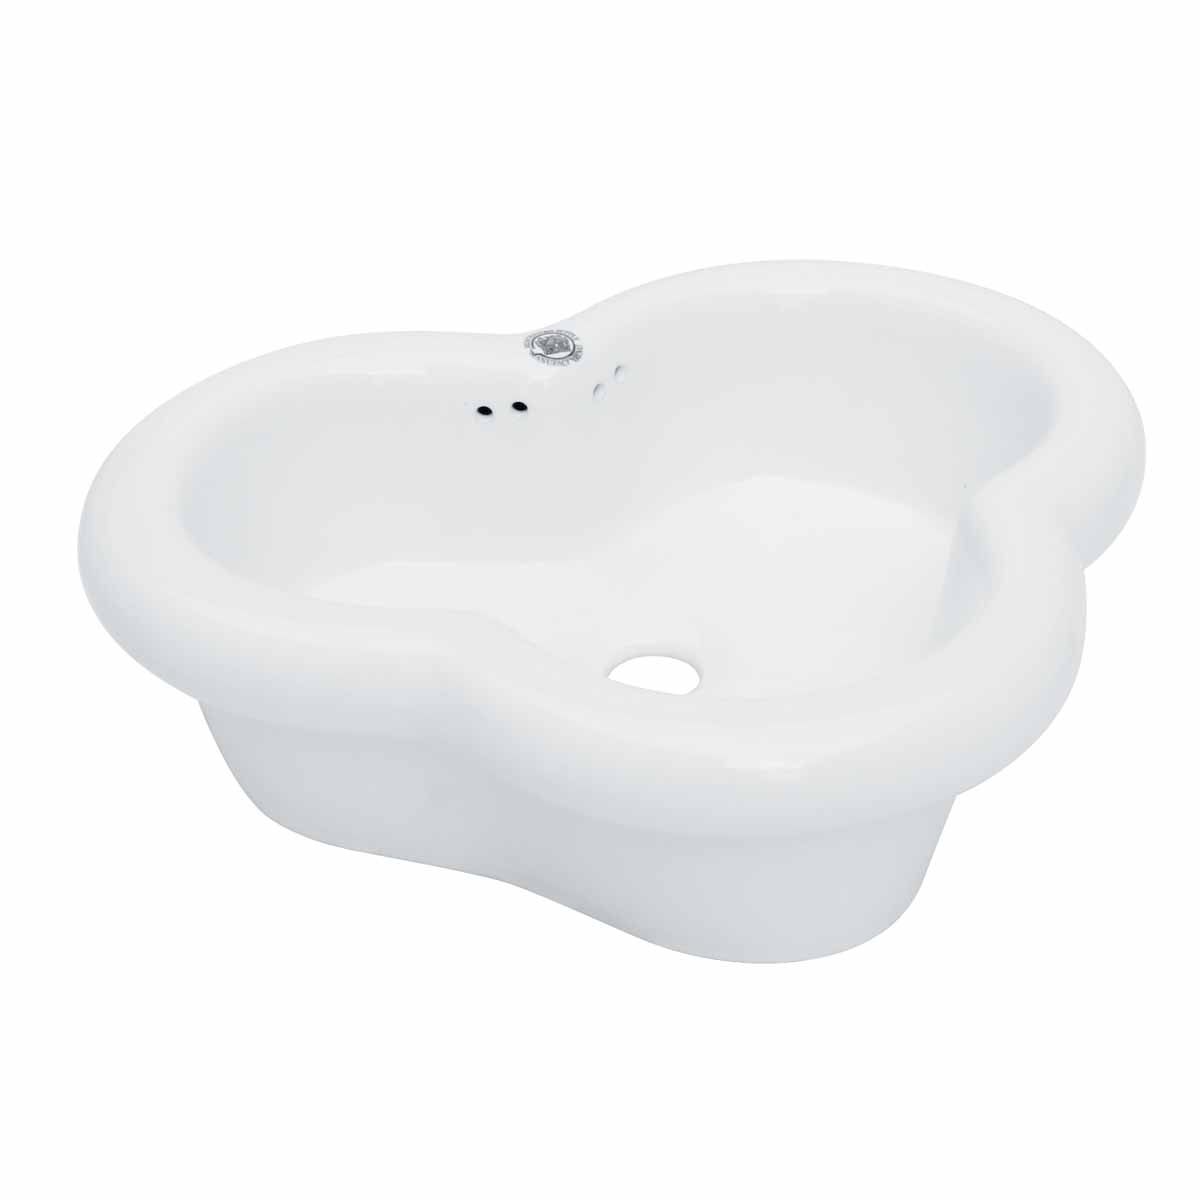 Bathroom Vessel Sink Heart White China Overflow